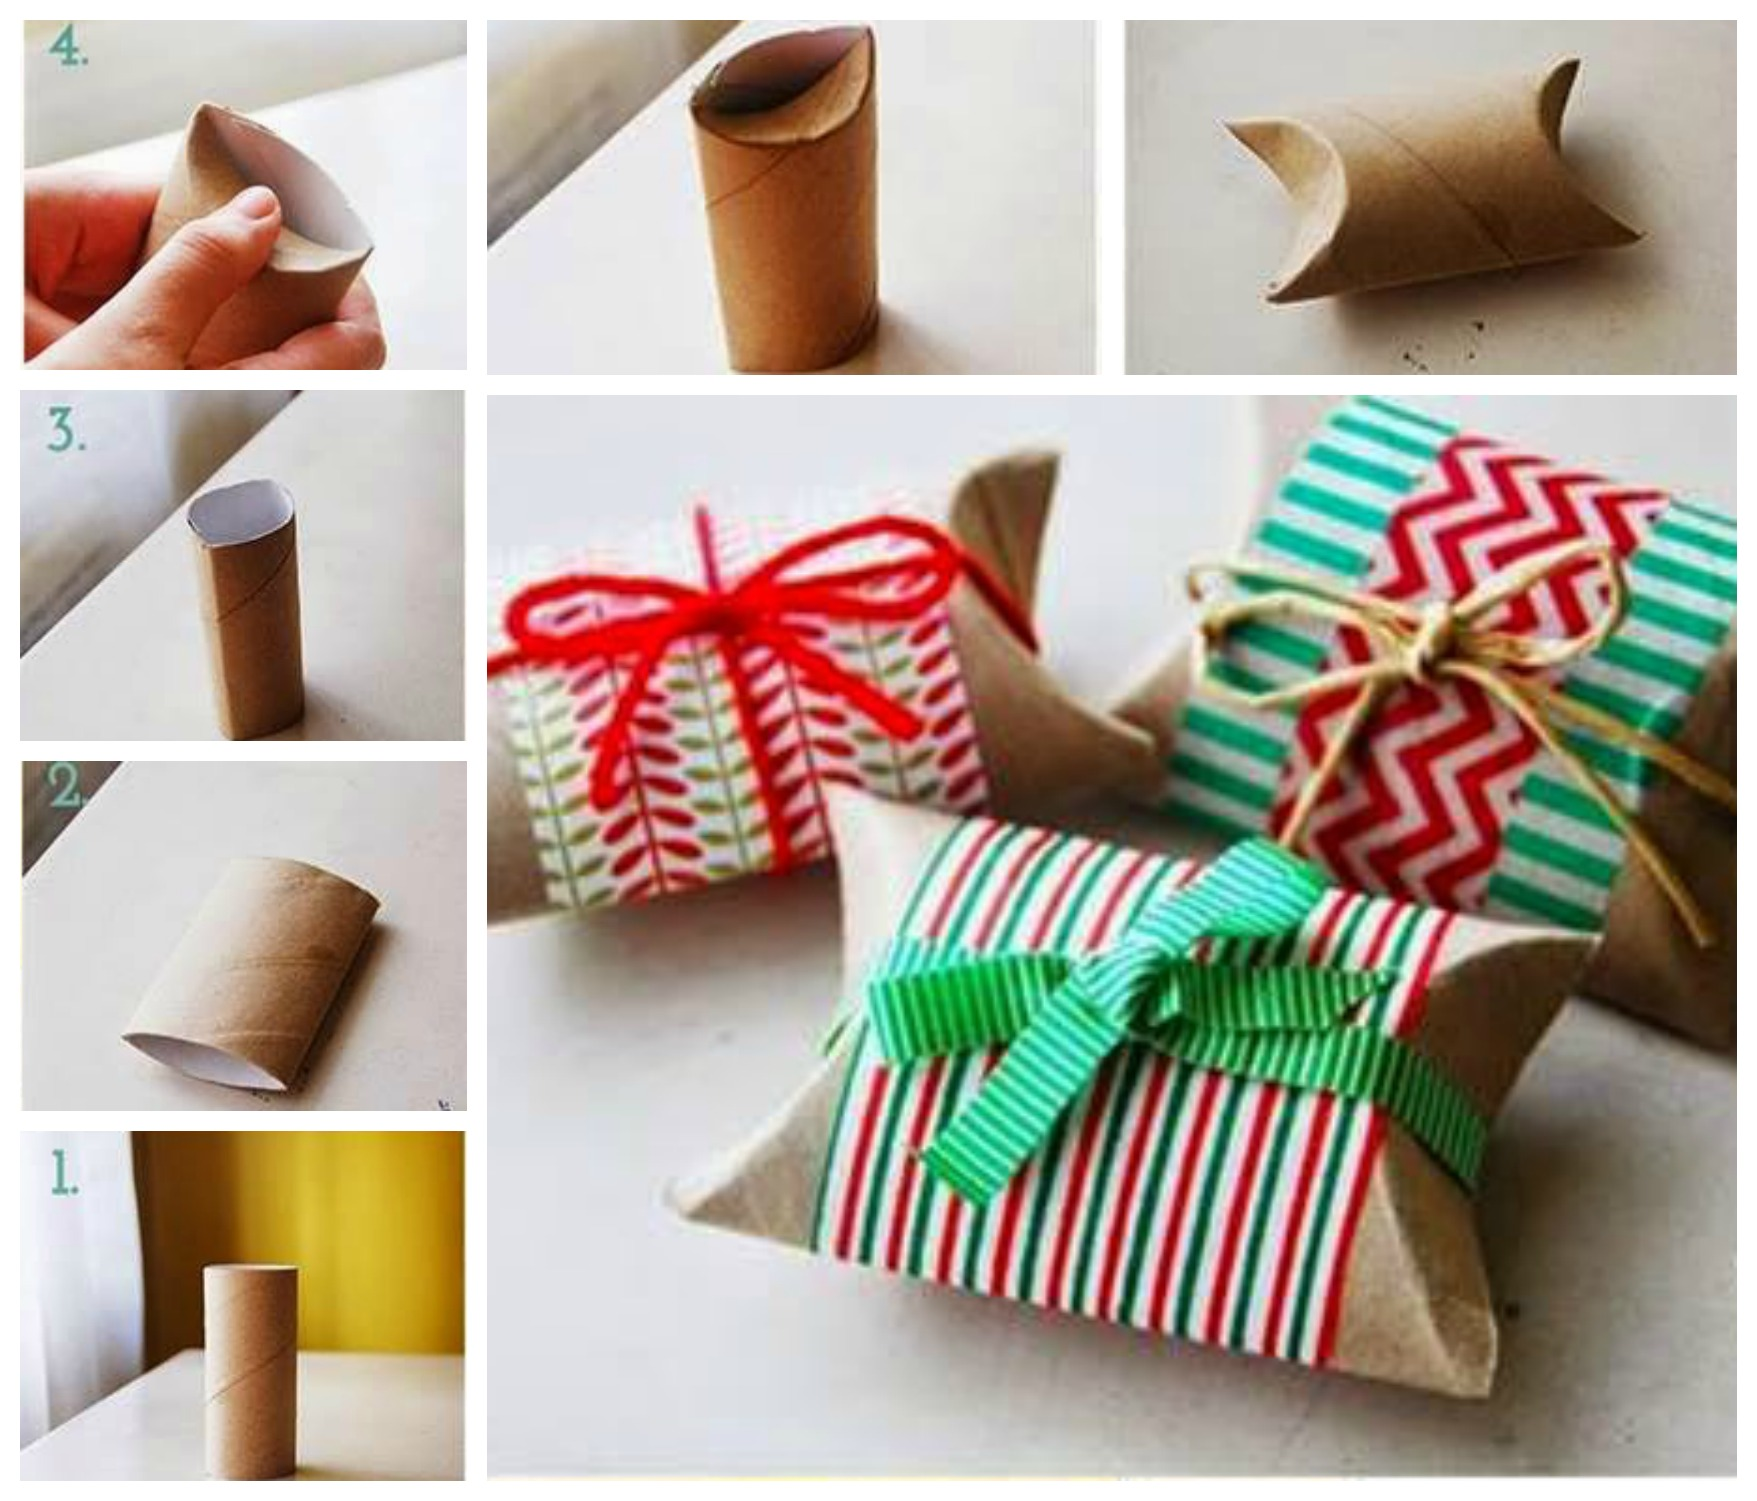 fun finds friday including christmas fun food craft ideas kitchen fun with my 3 sons. Black Bedroom Furniture Sets. Home Design Ideas